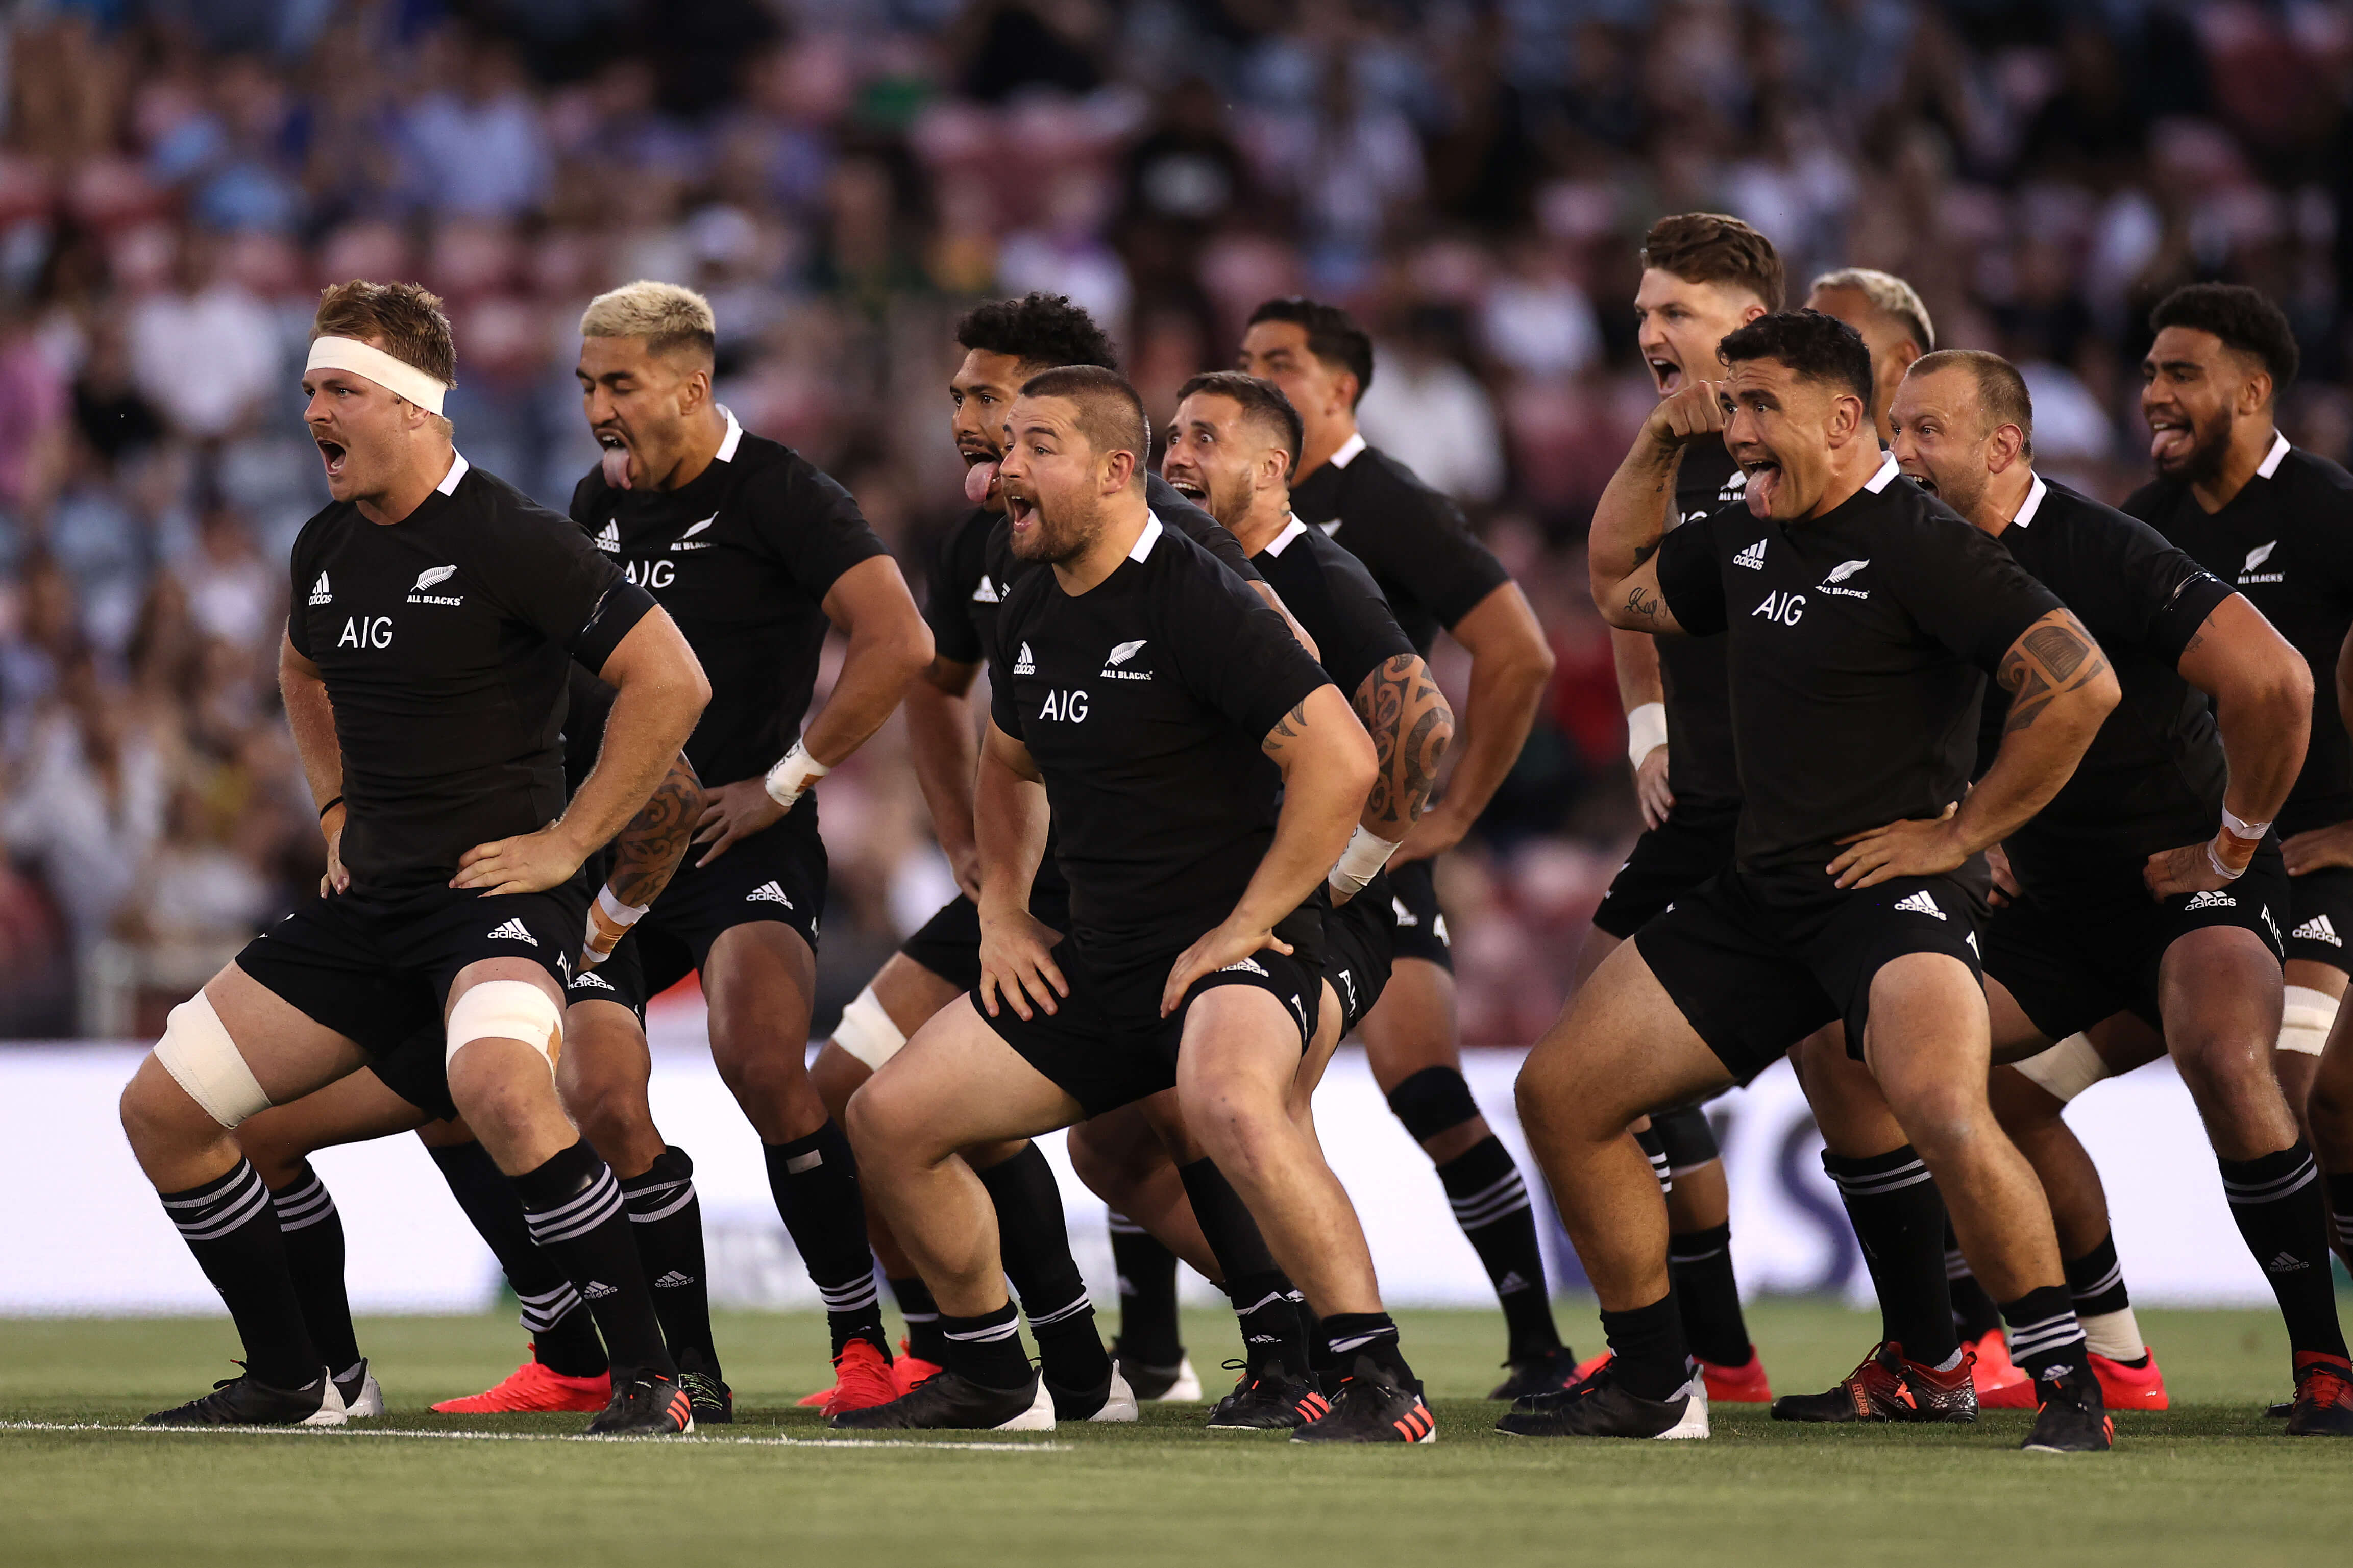 All Blacks Against Argentina 2020